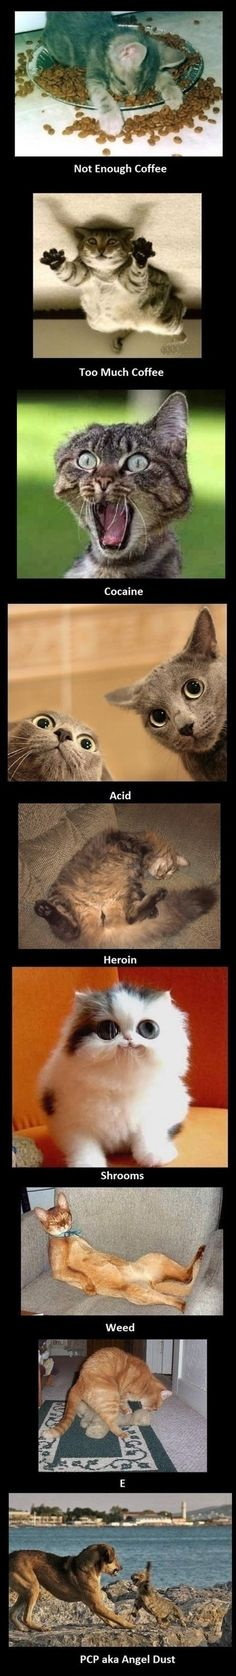 Cats on drugs - funny pictures #funnypictures